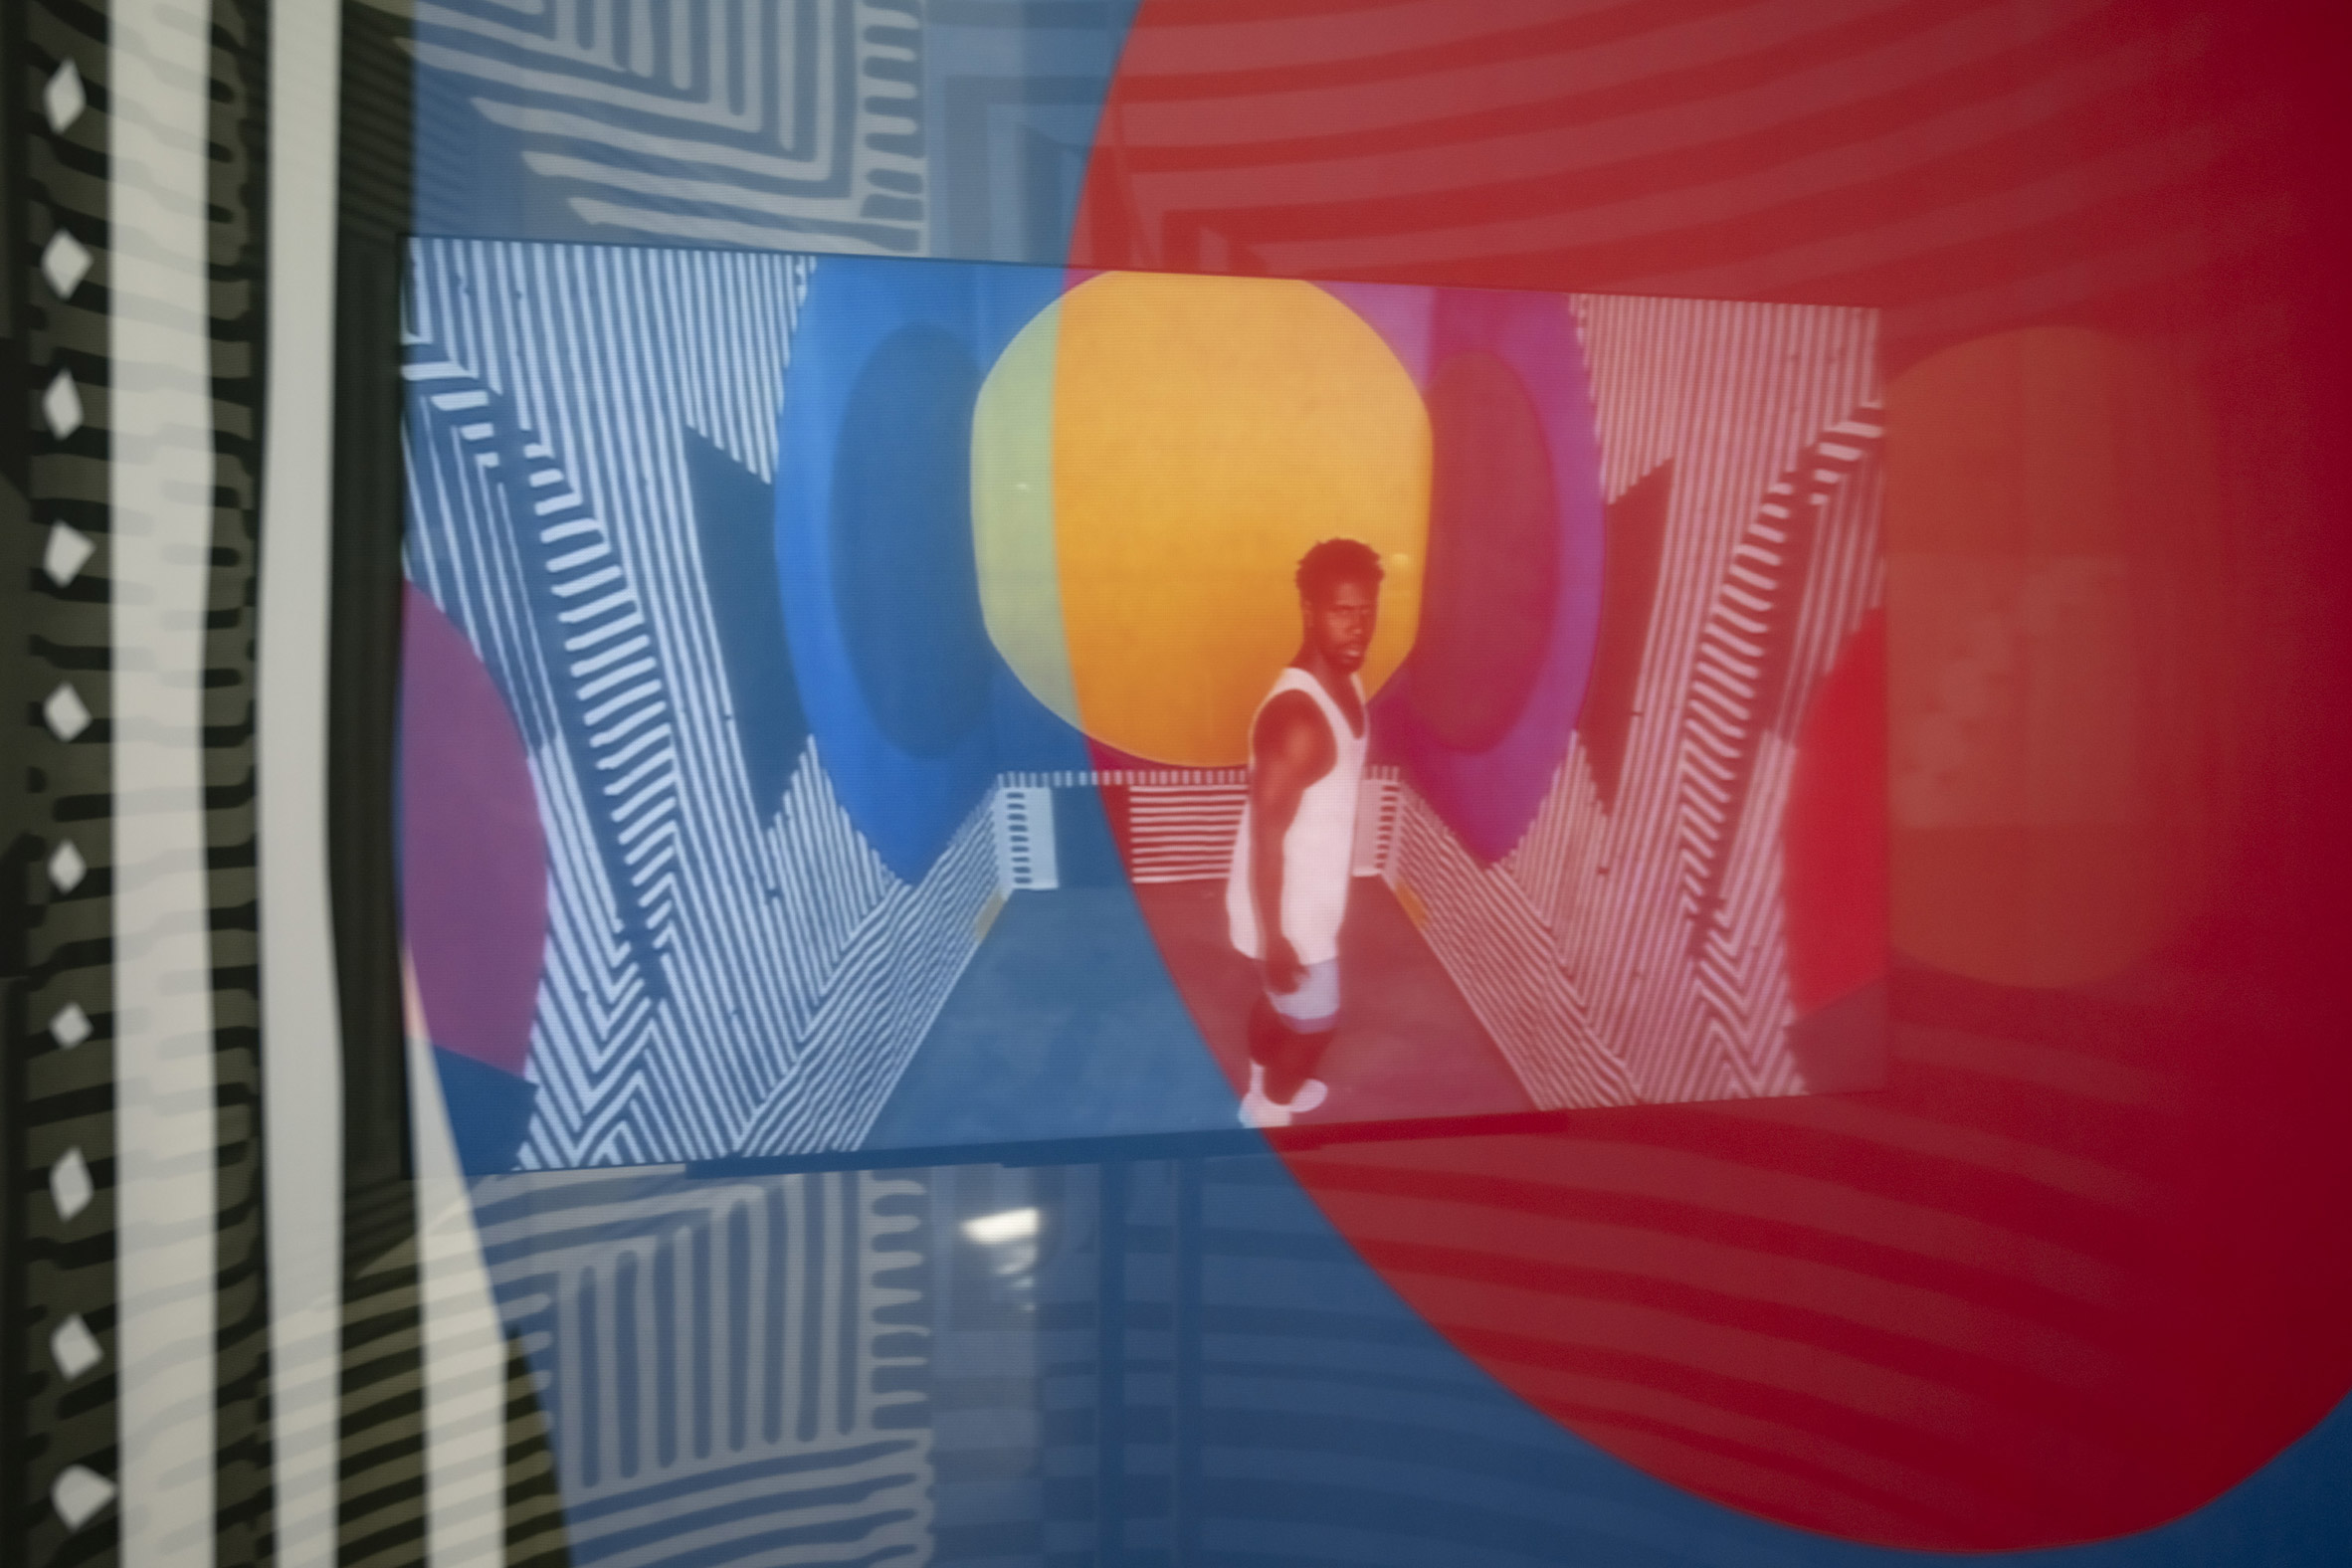 Video performances at the Space of Other in the Dutch Pavilion